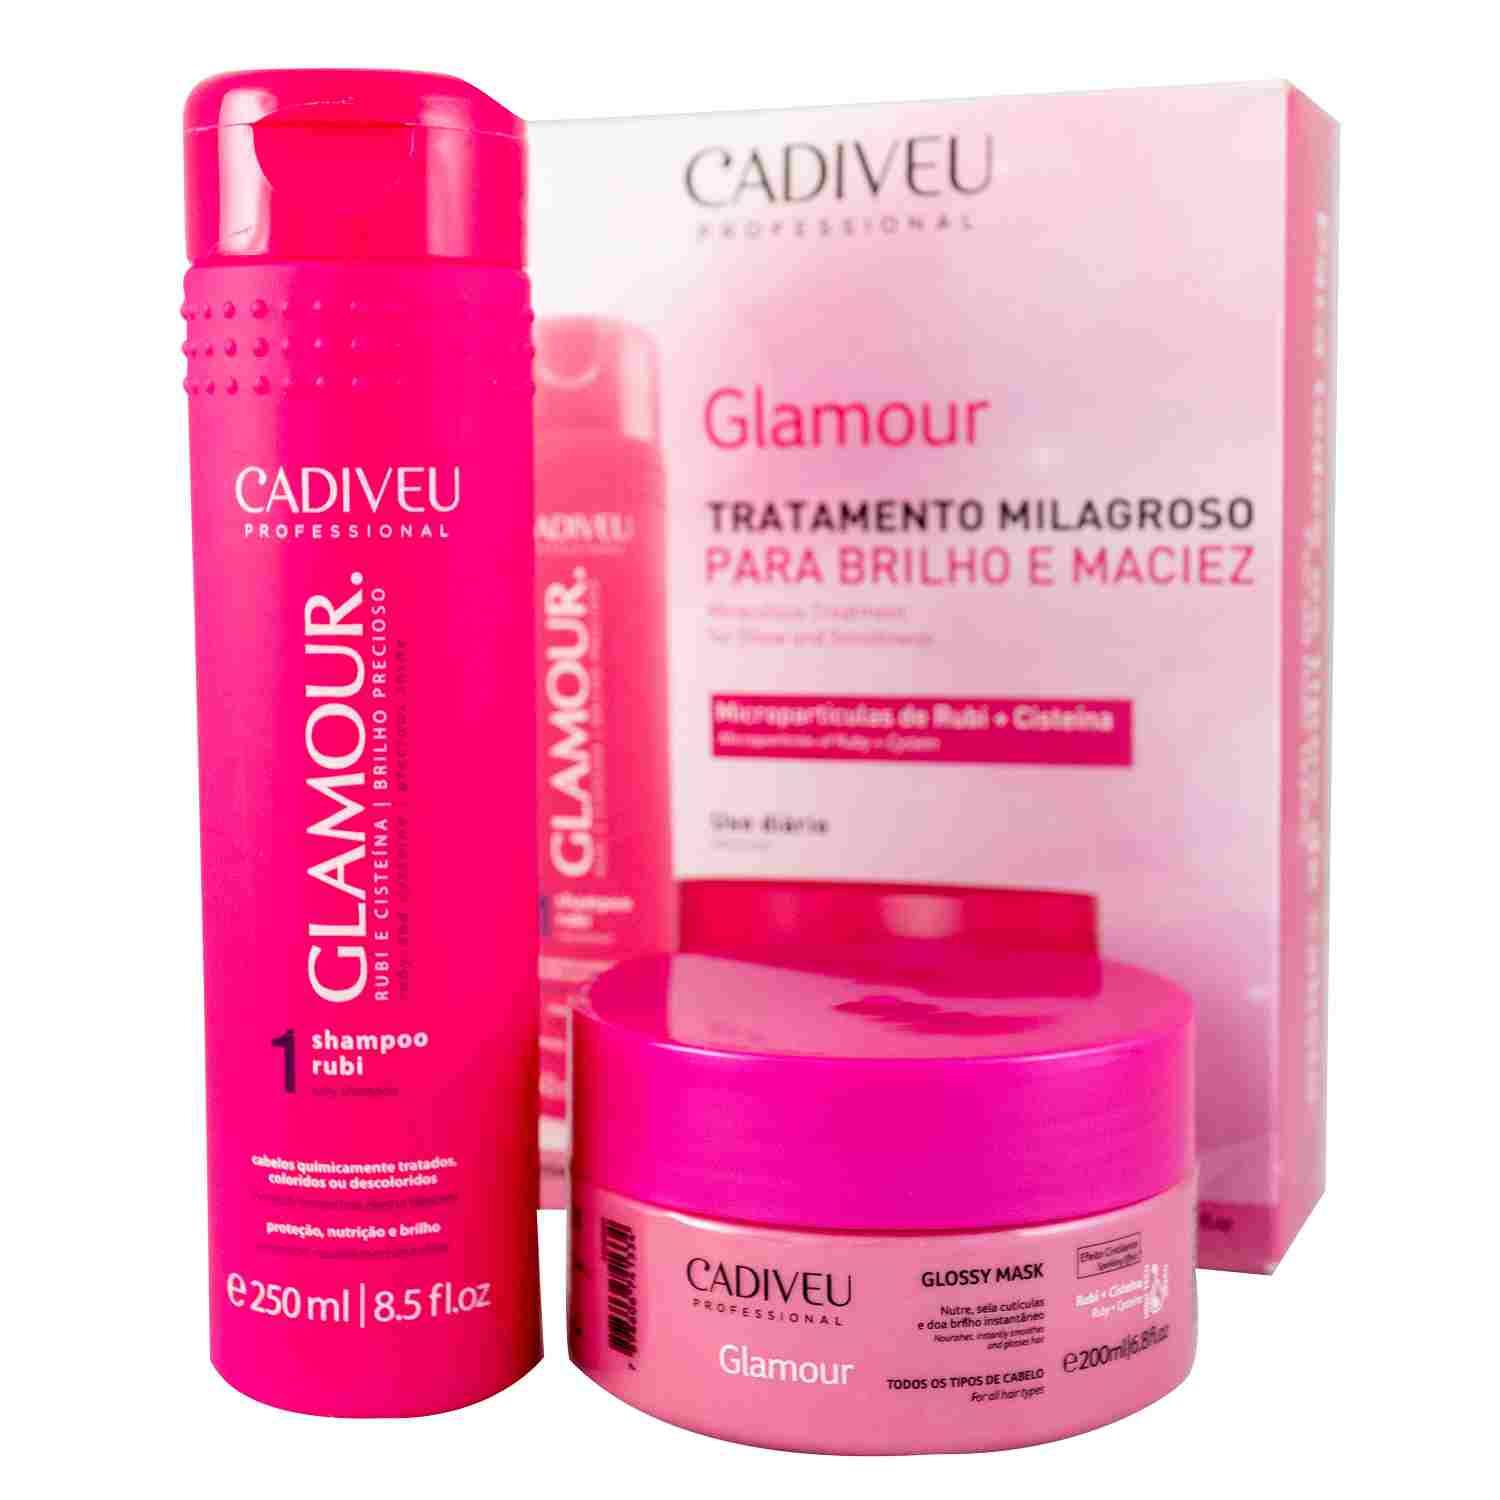 Glamour - Kit Home Care 02  - Cadiveu Professional